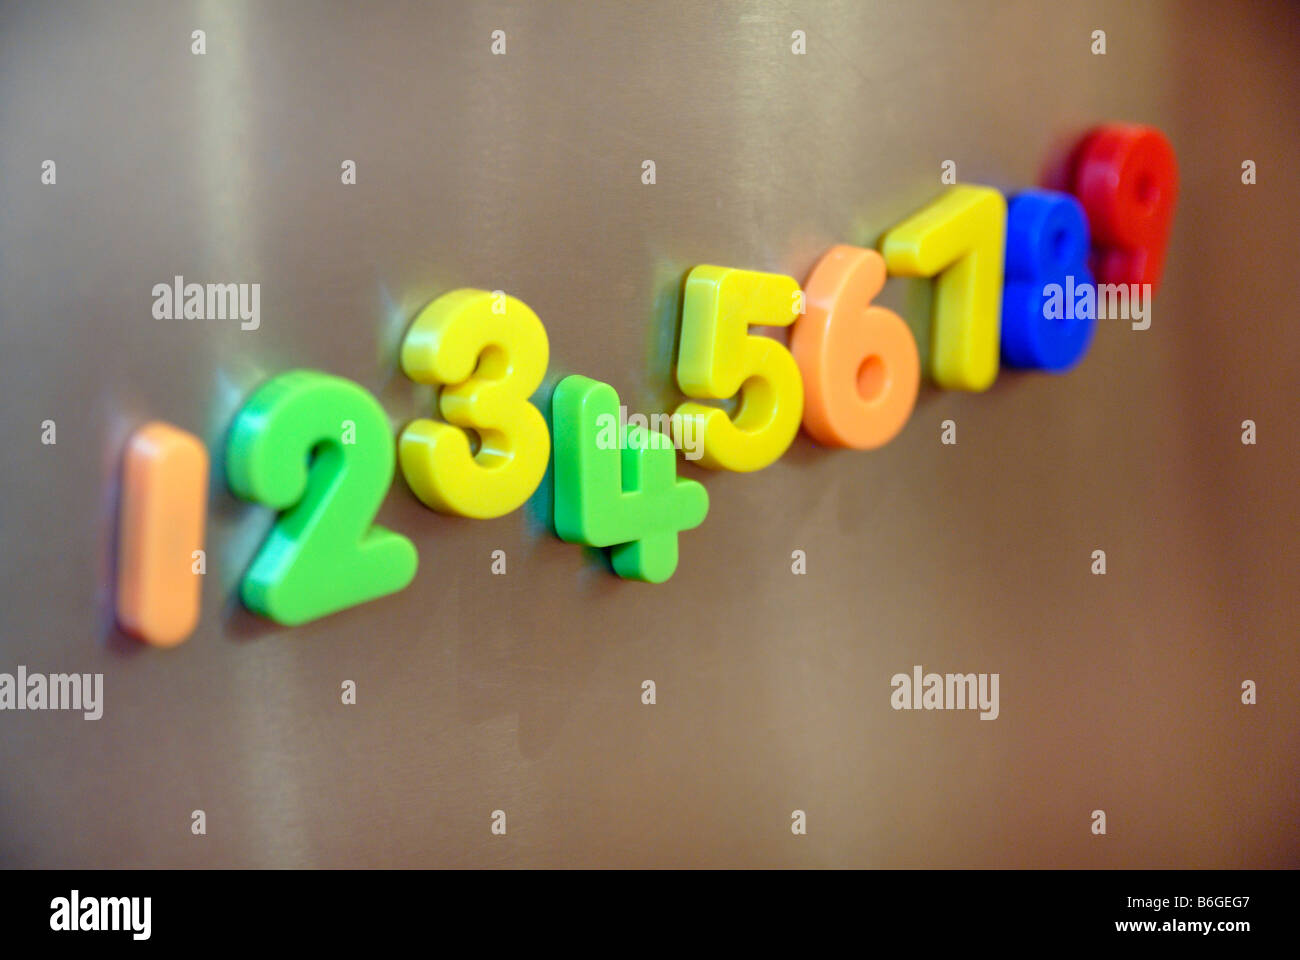 Magnetic numbers on a fridge door - Stock Image